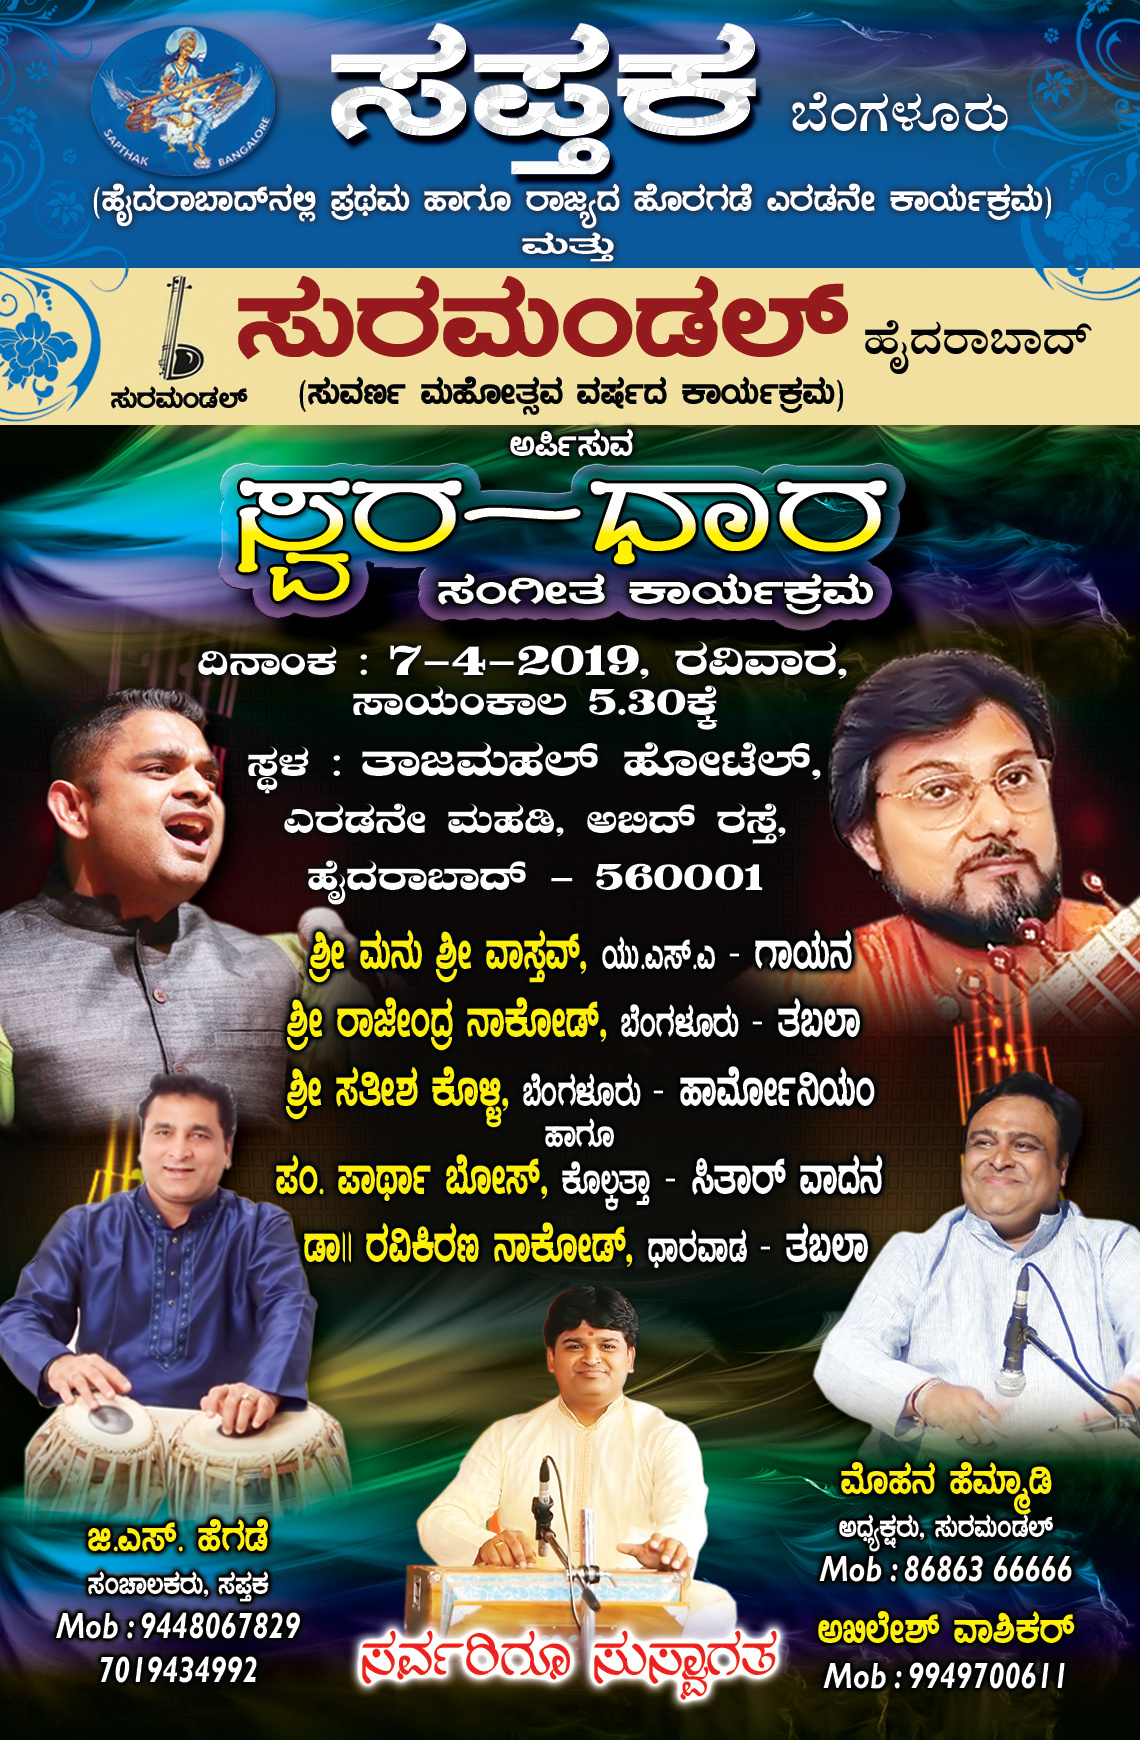 SWARA DHARA HYDERABAD KANNADA FINAL